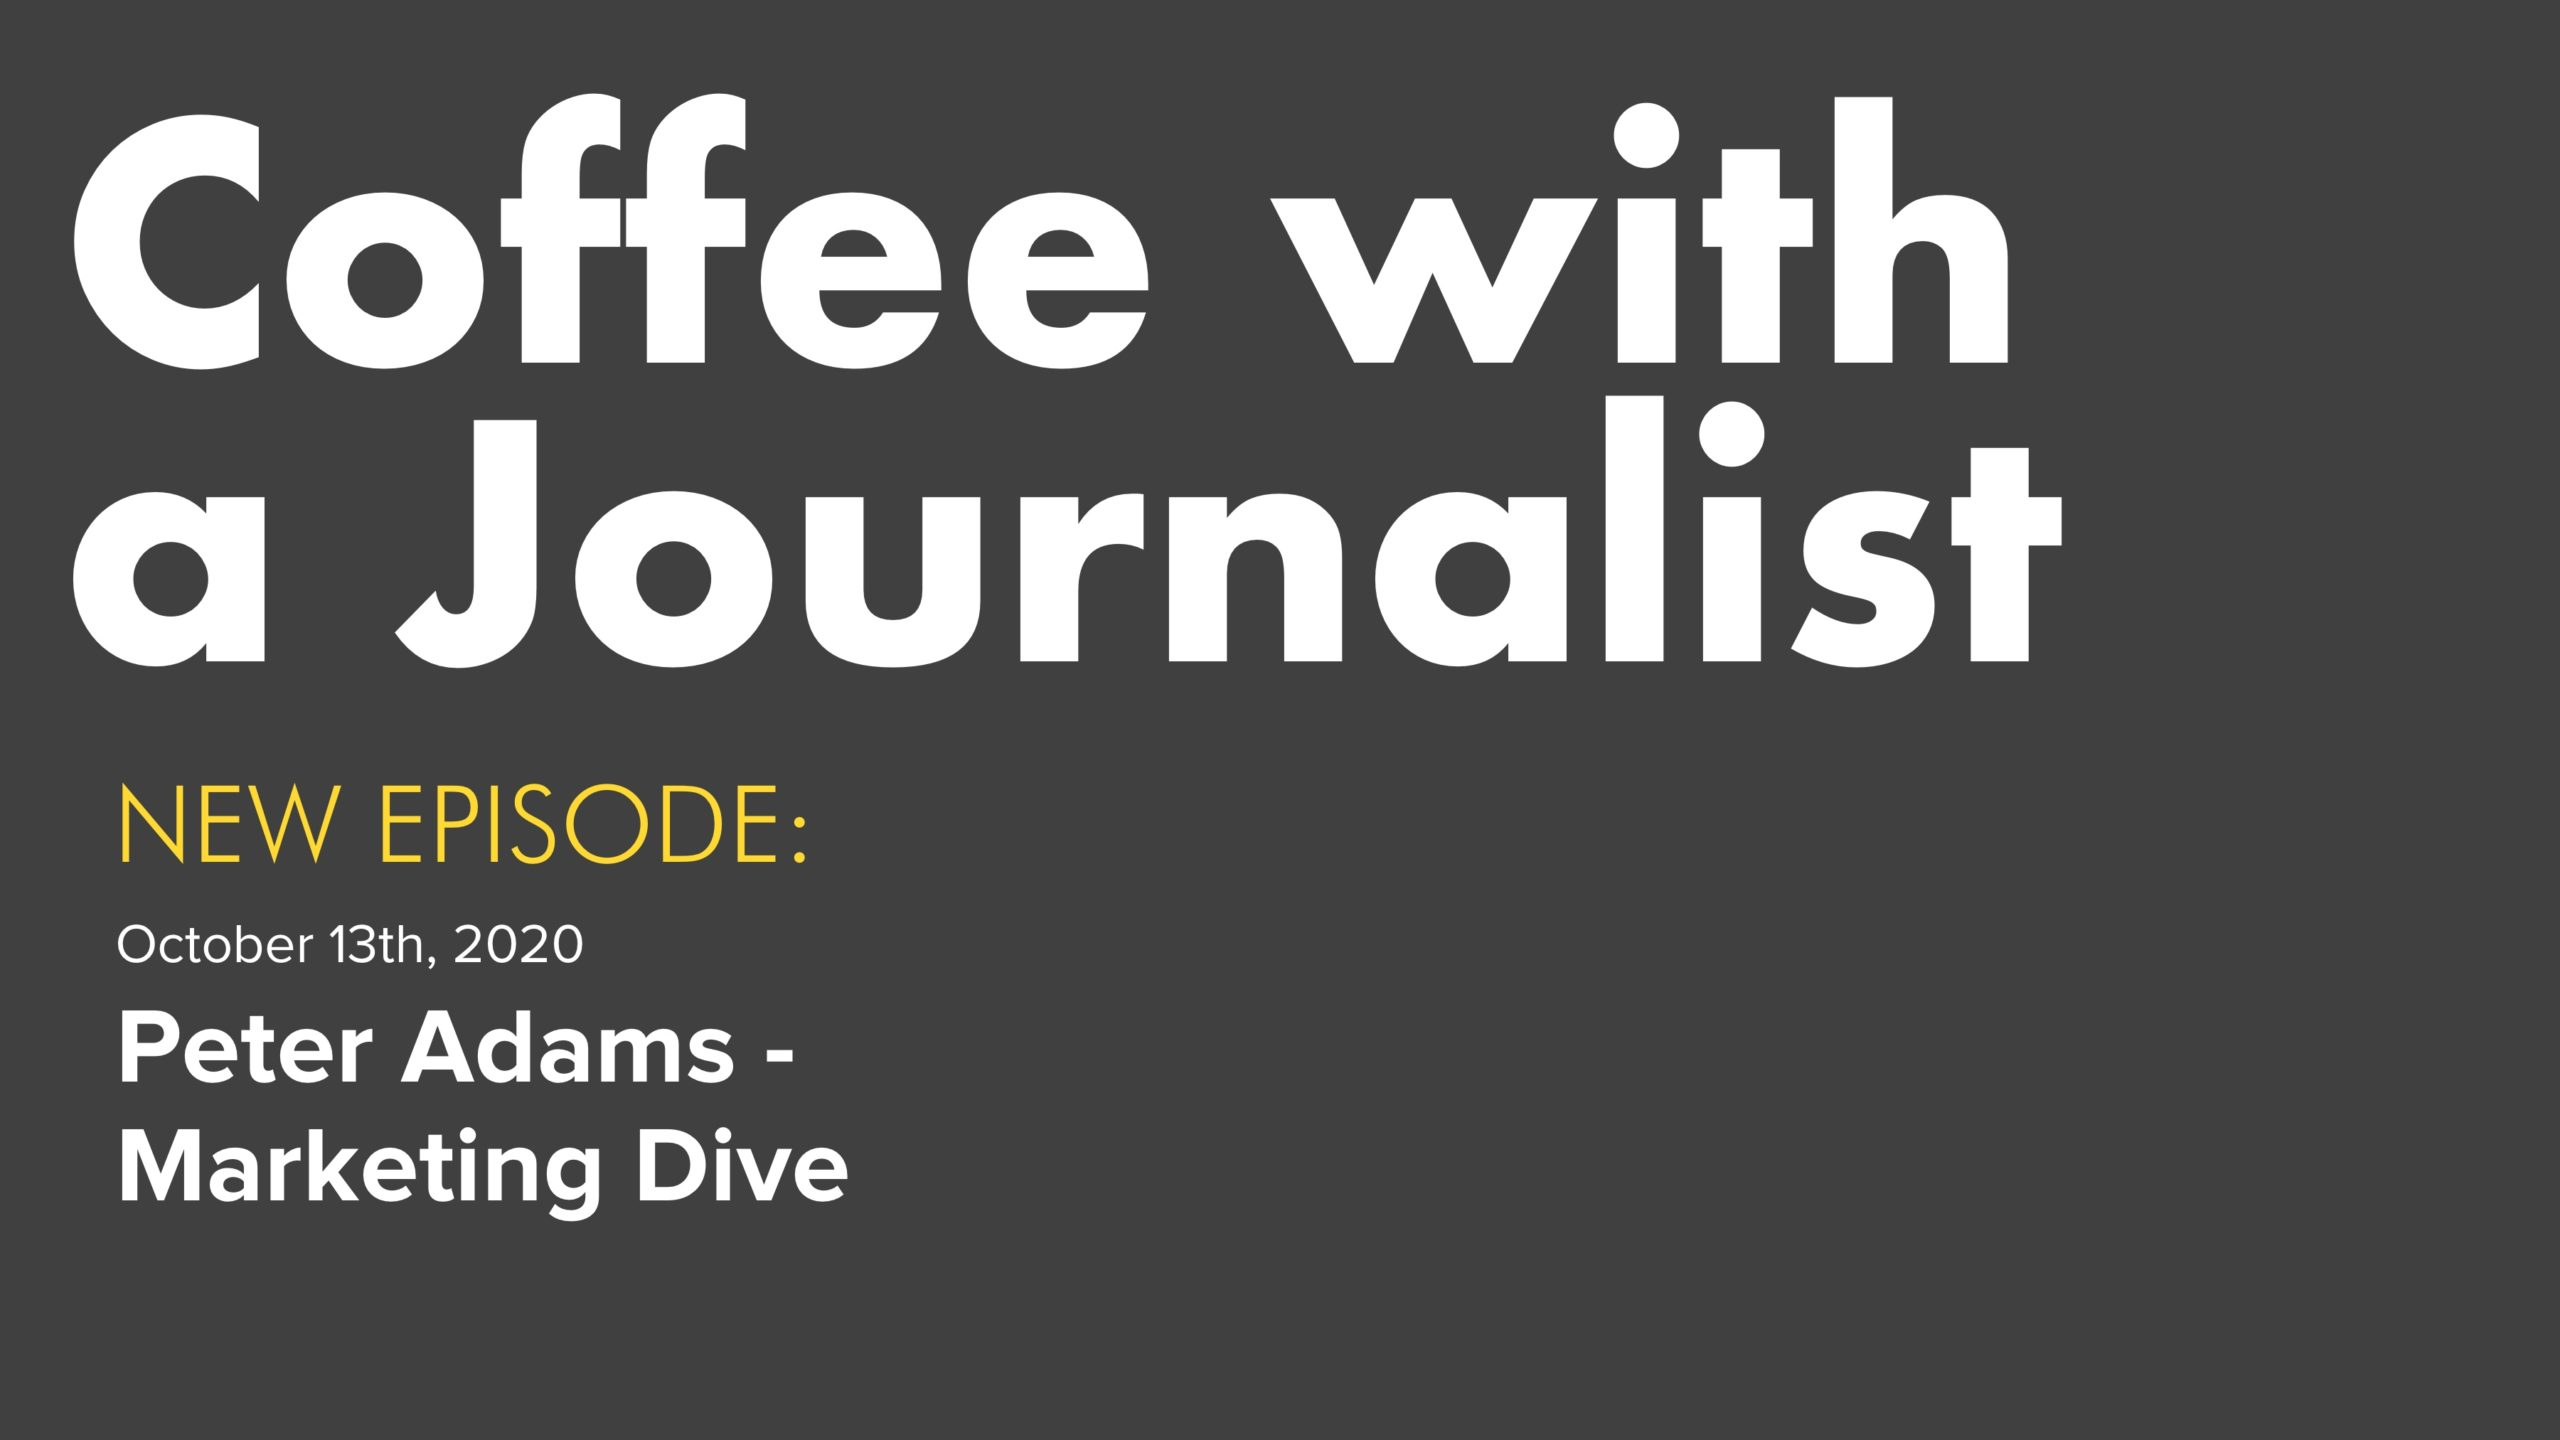 Coffee With A Journalist - Peter Adams, Marketing Dive